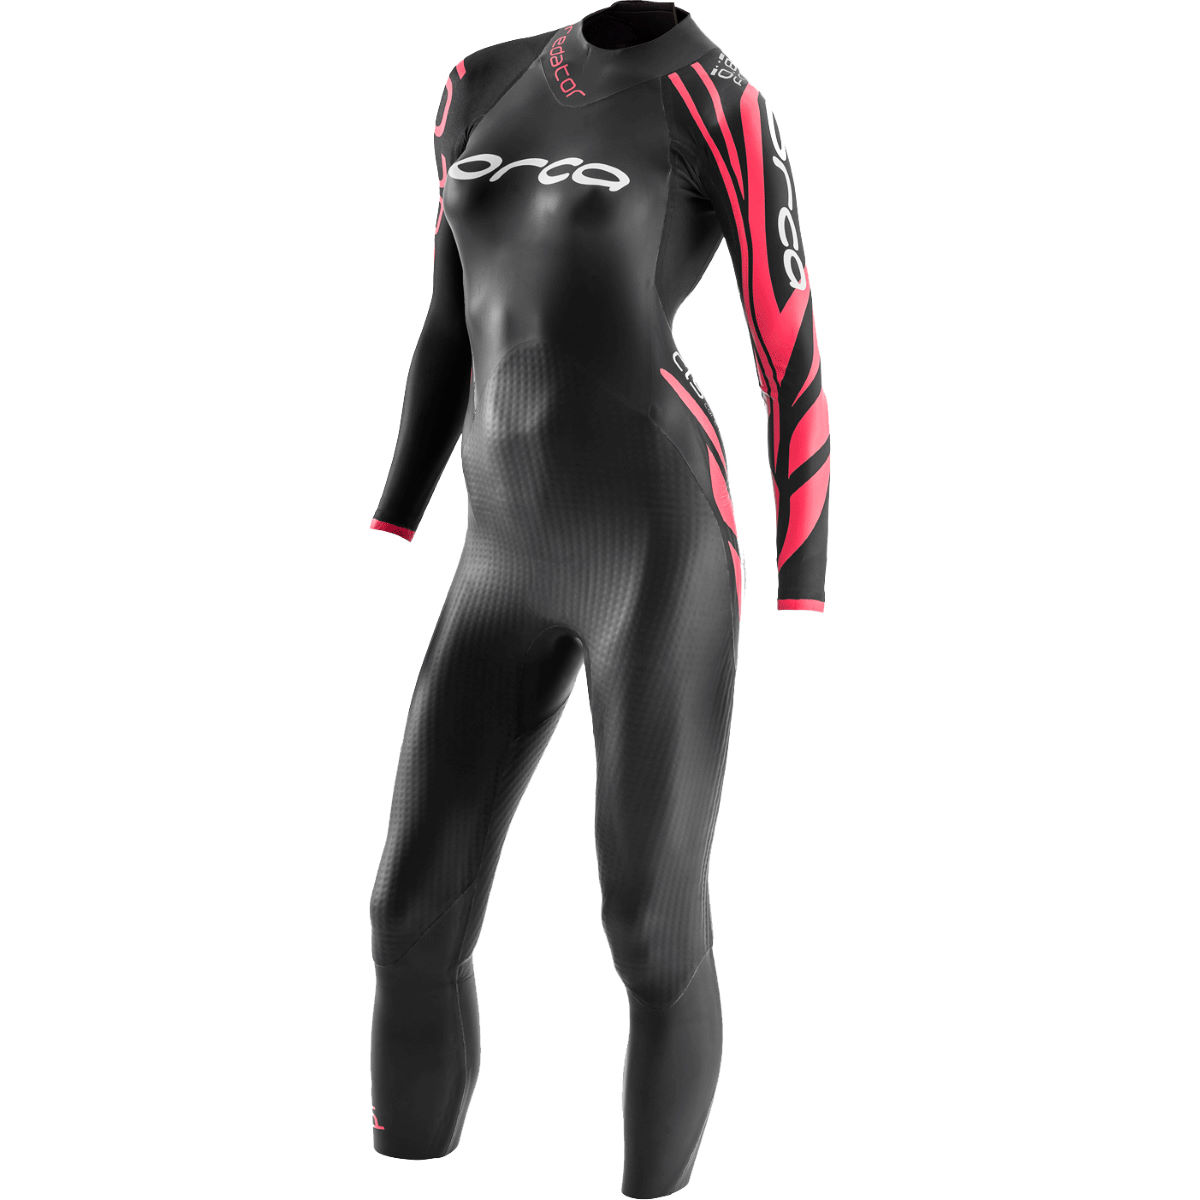 Orca Women's Predator Wetsuit - Extra Large Black | Wetsuits